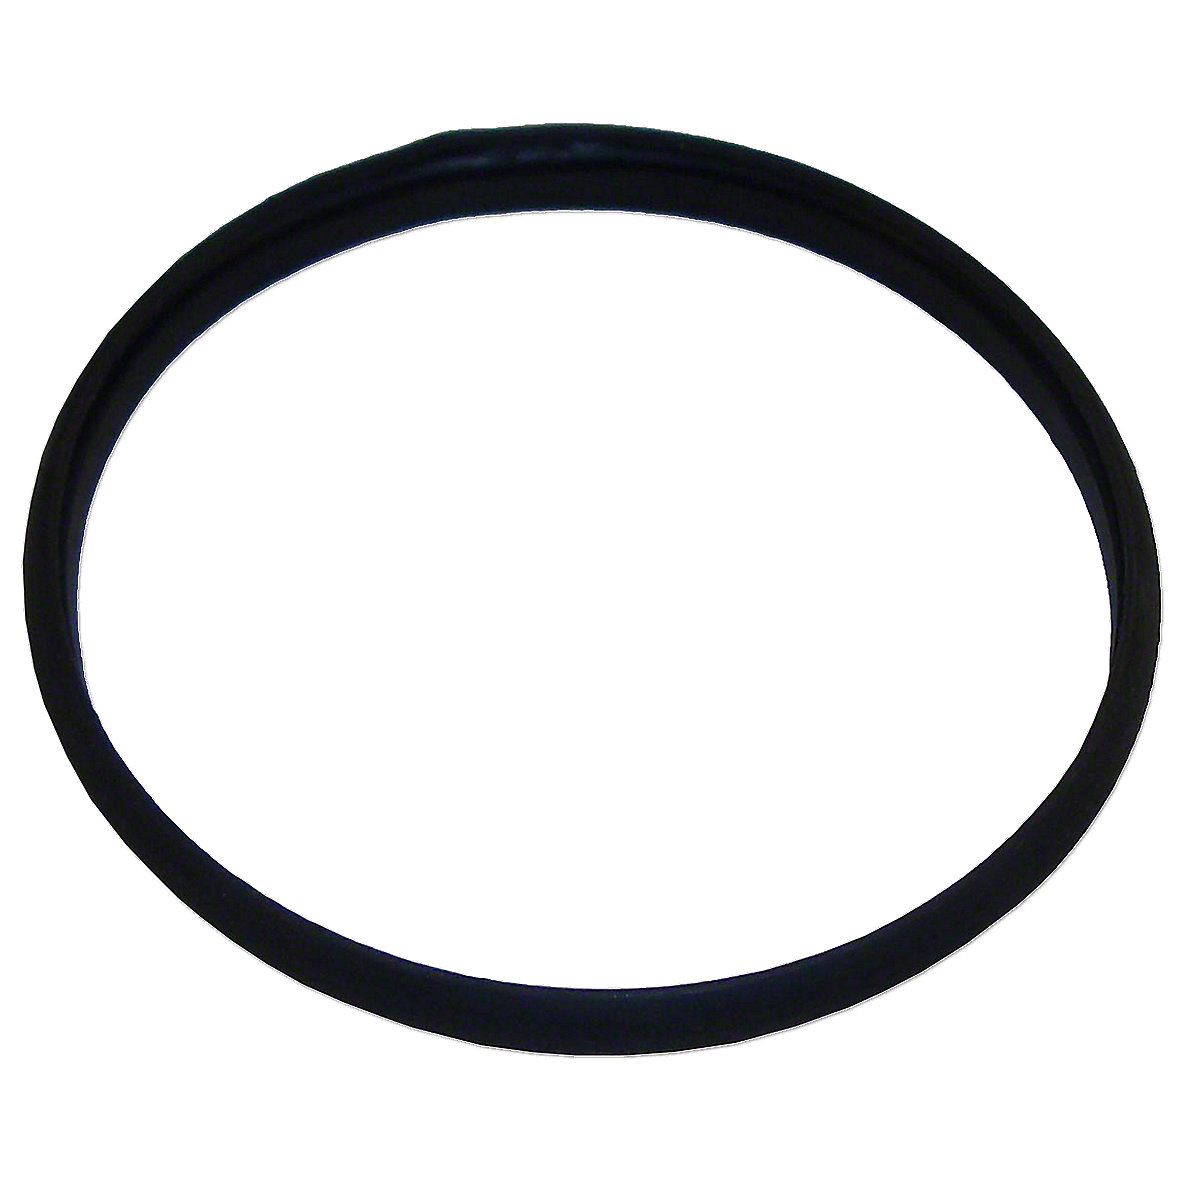 ABC560 - Rubber Gasket (For Headlight)